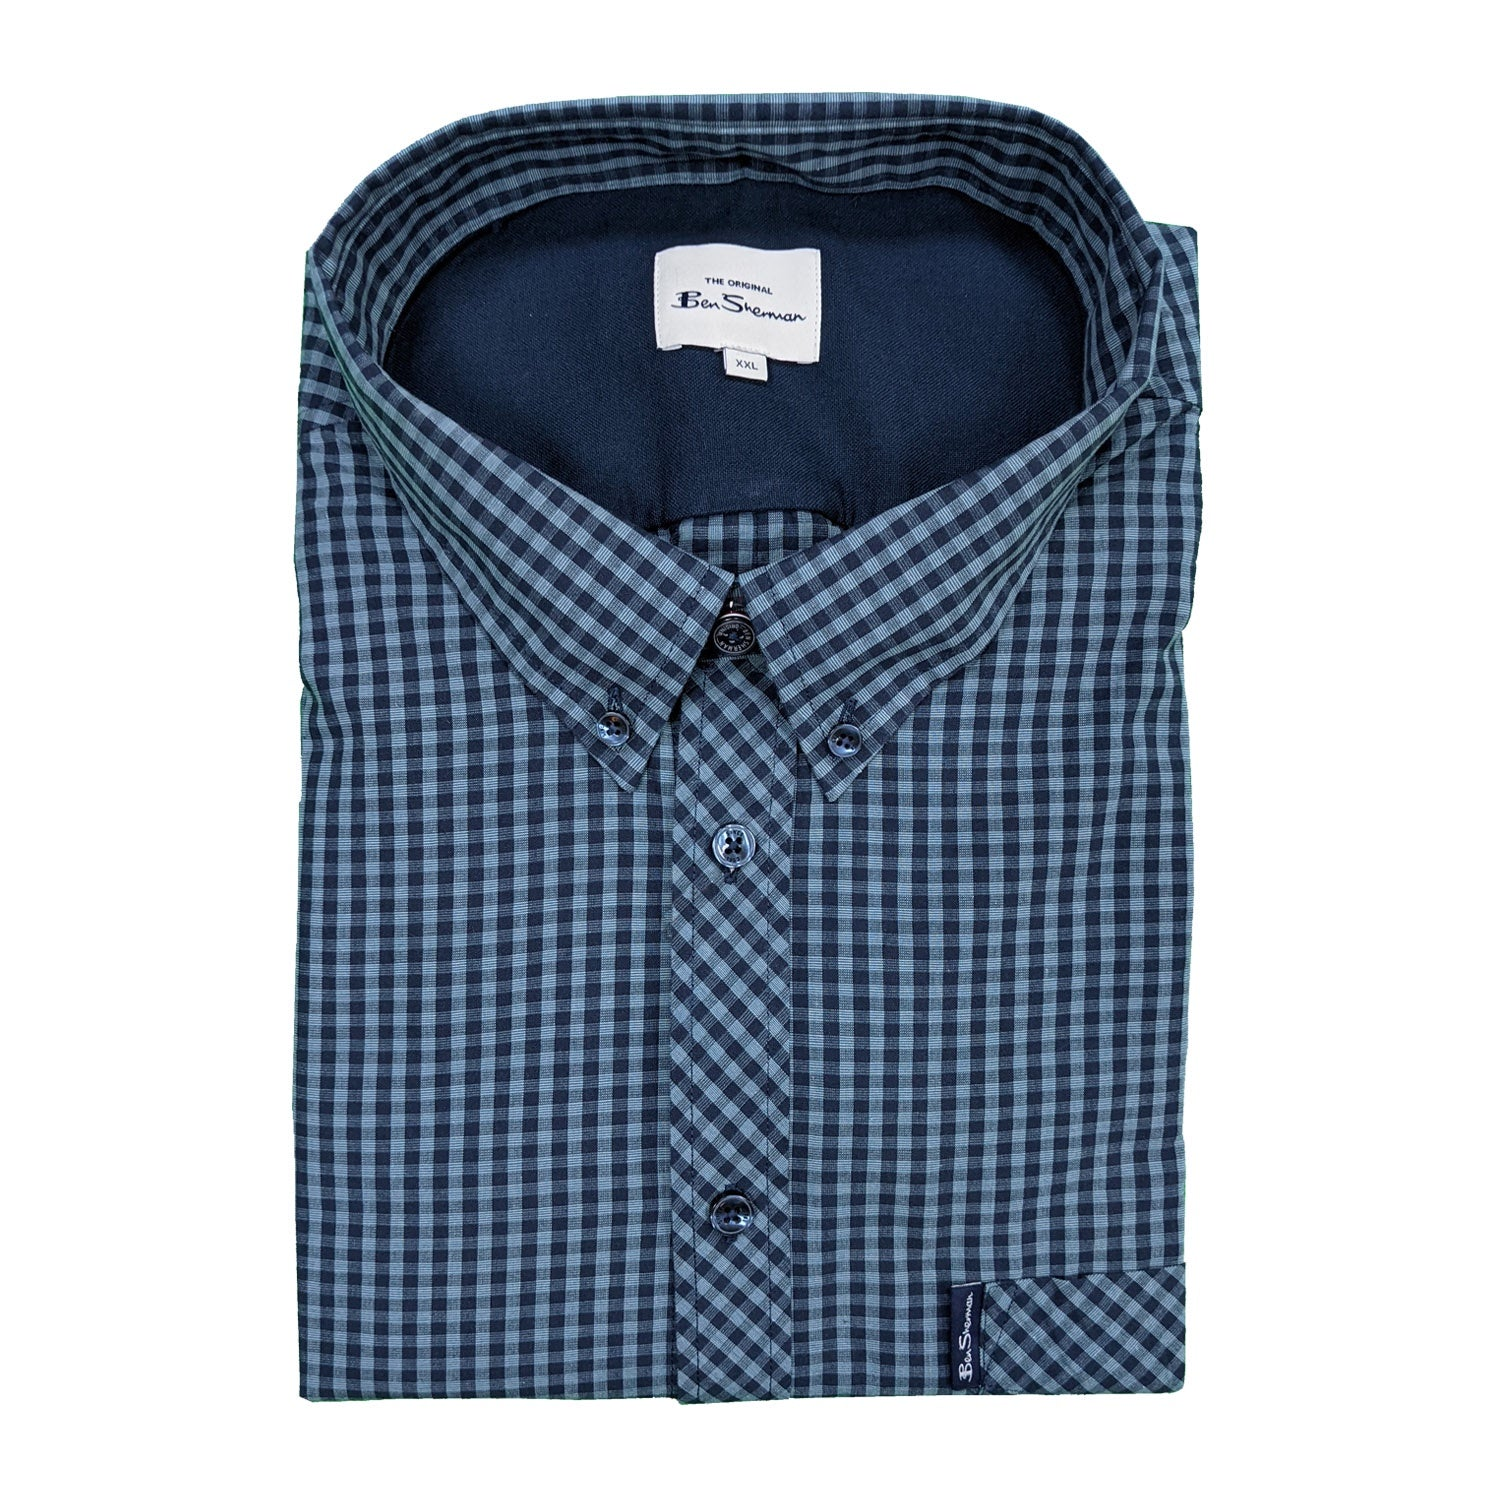 Ben Sherman S/S Shirt - 0059142IL - Sea 1